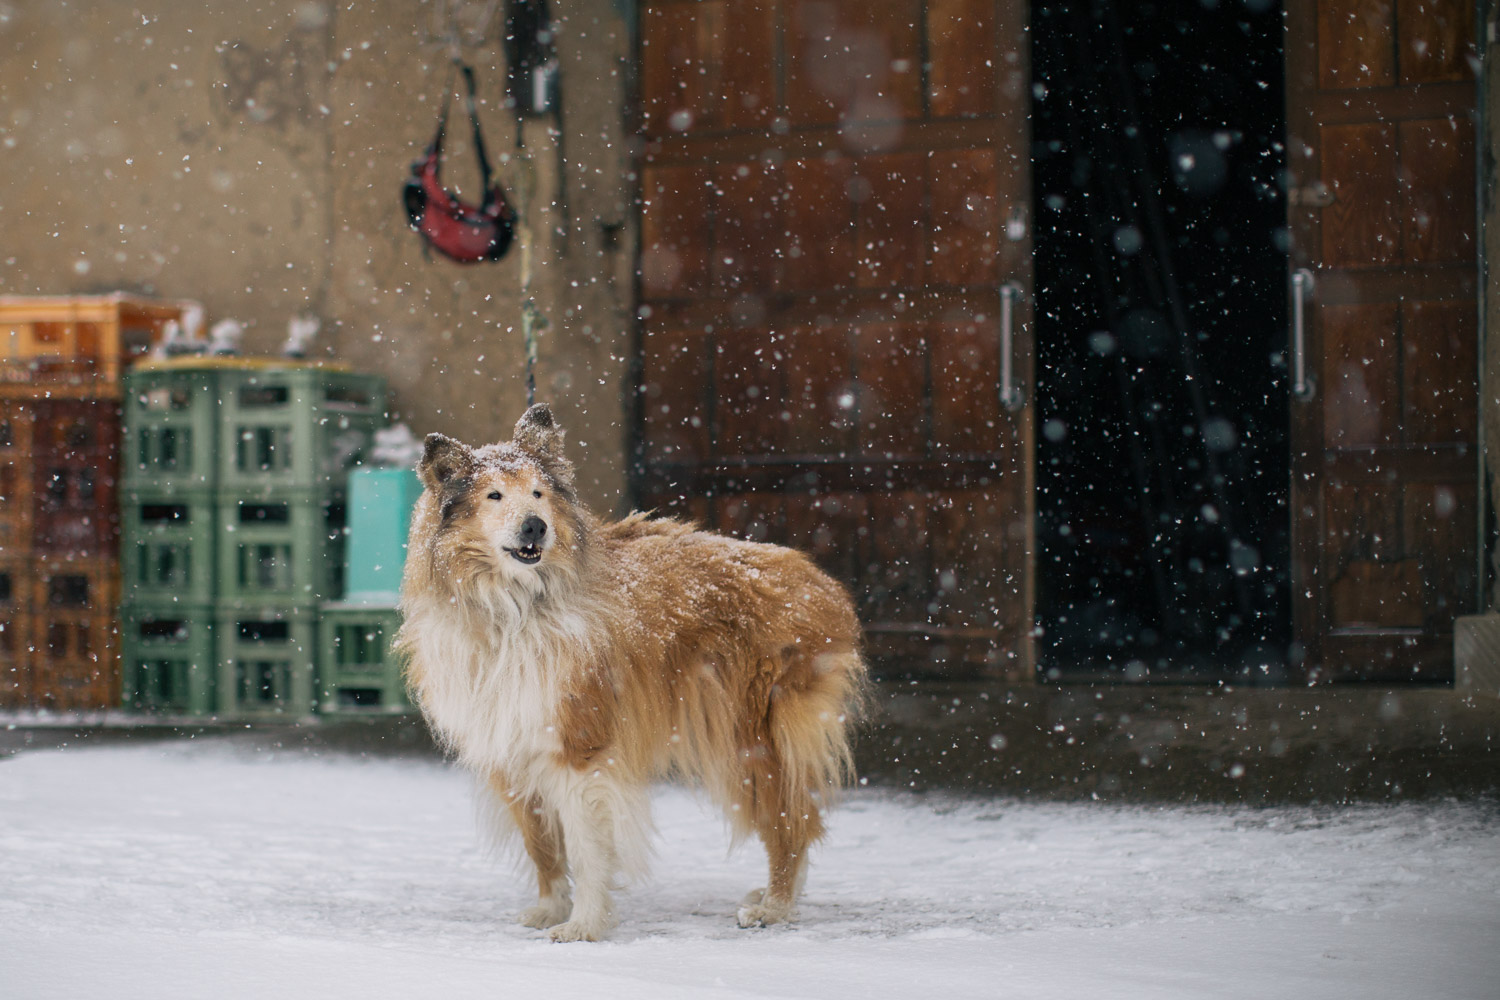 A dog in the snow outside a sake brewery in Iiyama, Nagano, Japan